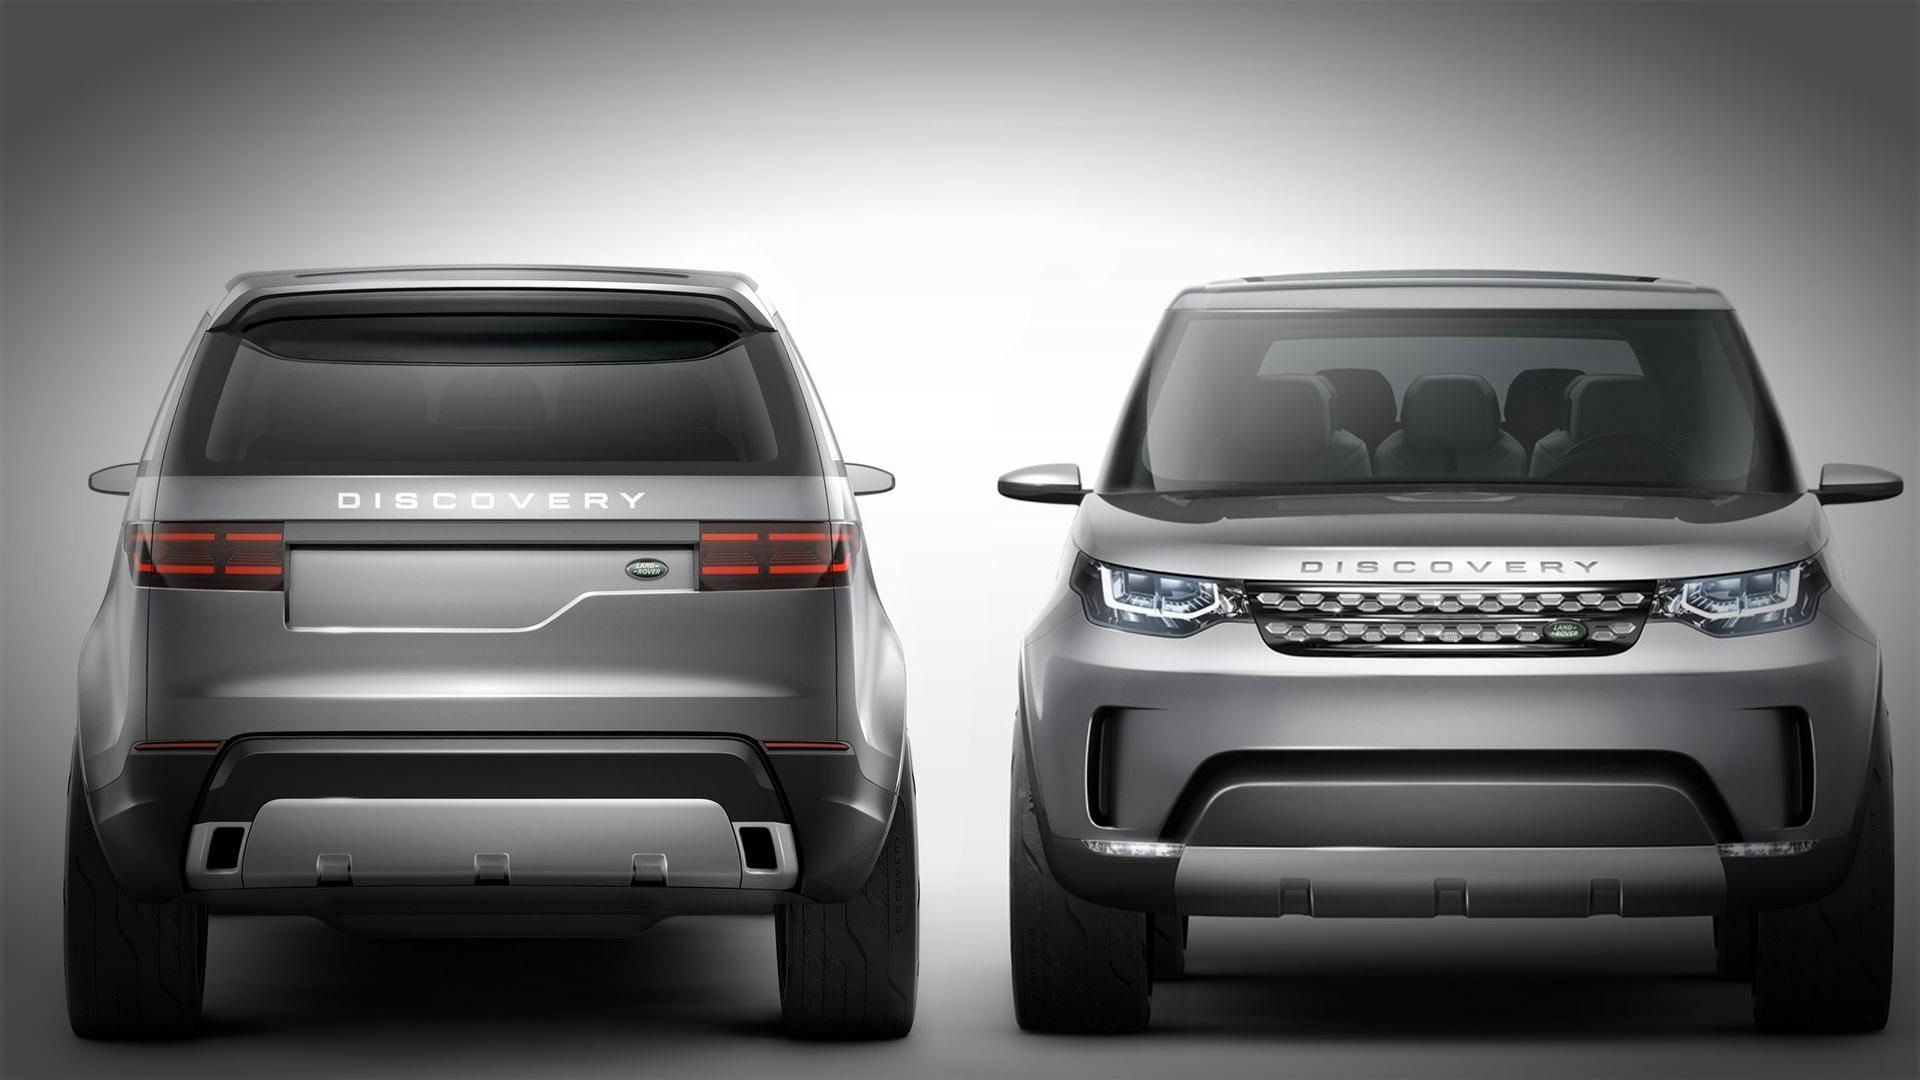 2014 Land Rover Discovery Vision Concept insurance 2014 Land Rover